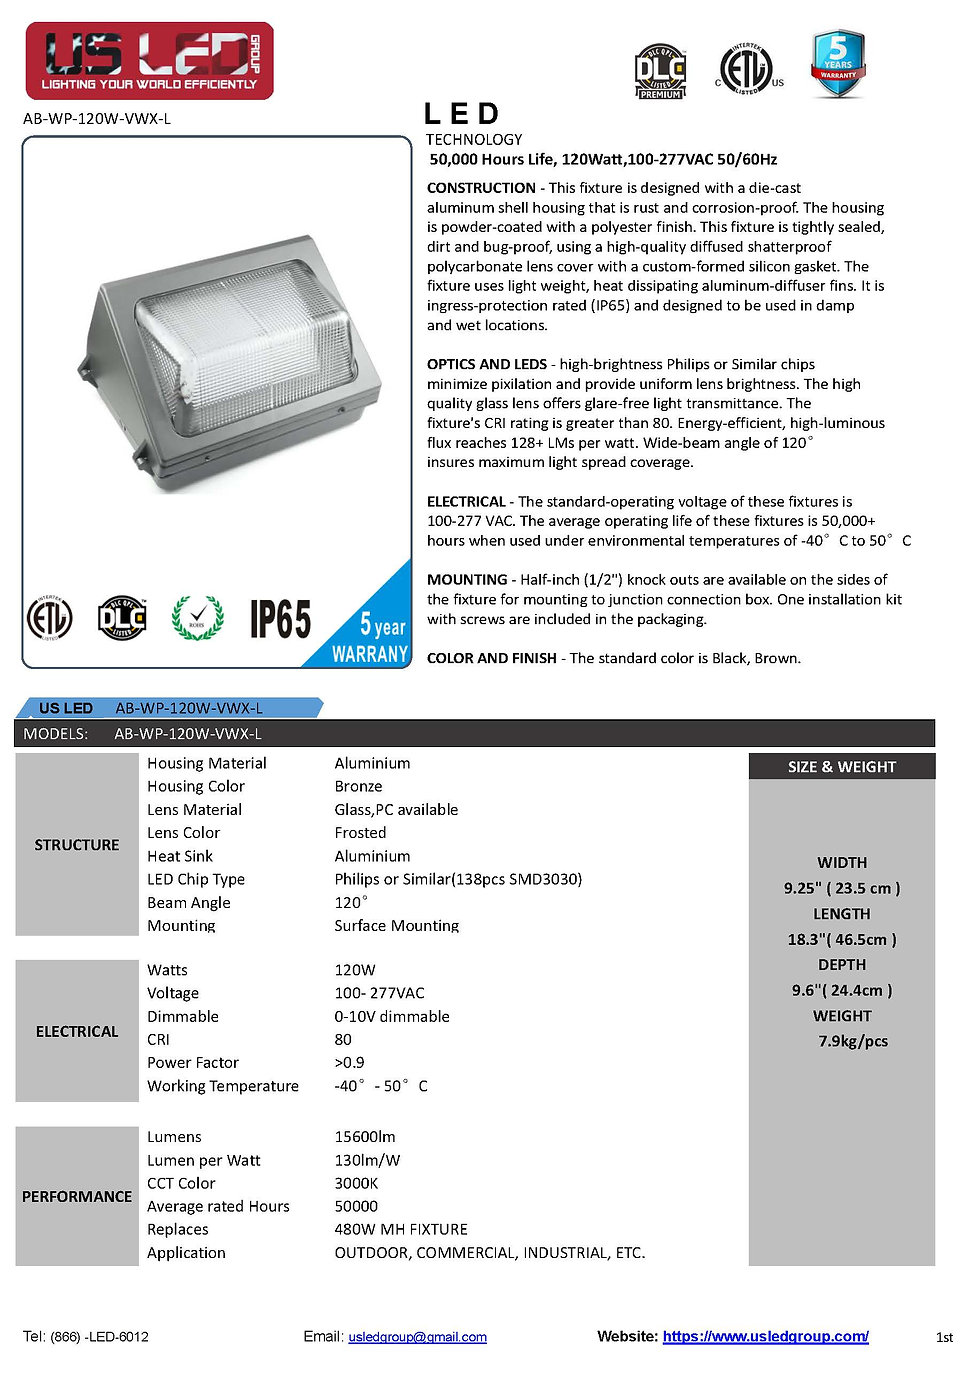 Spec for Wallpack AB-WP-120W-VWX-L(CCT30